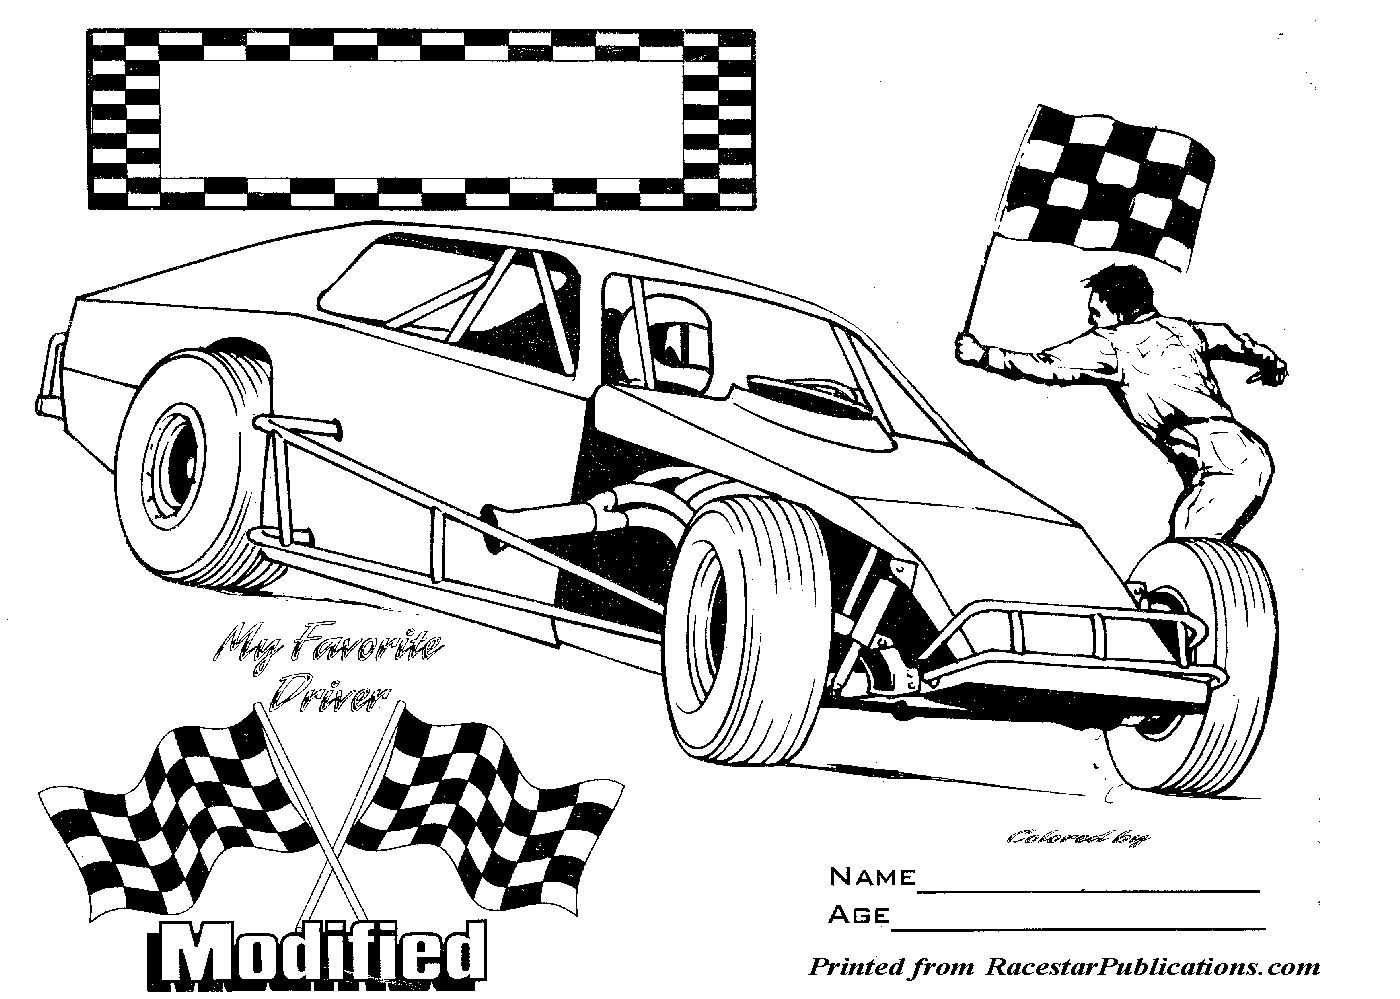 nascar coloring pages modified race car colouring pages - Nascar Coloring Pages